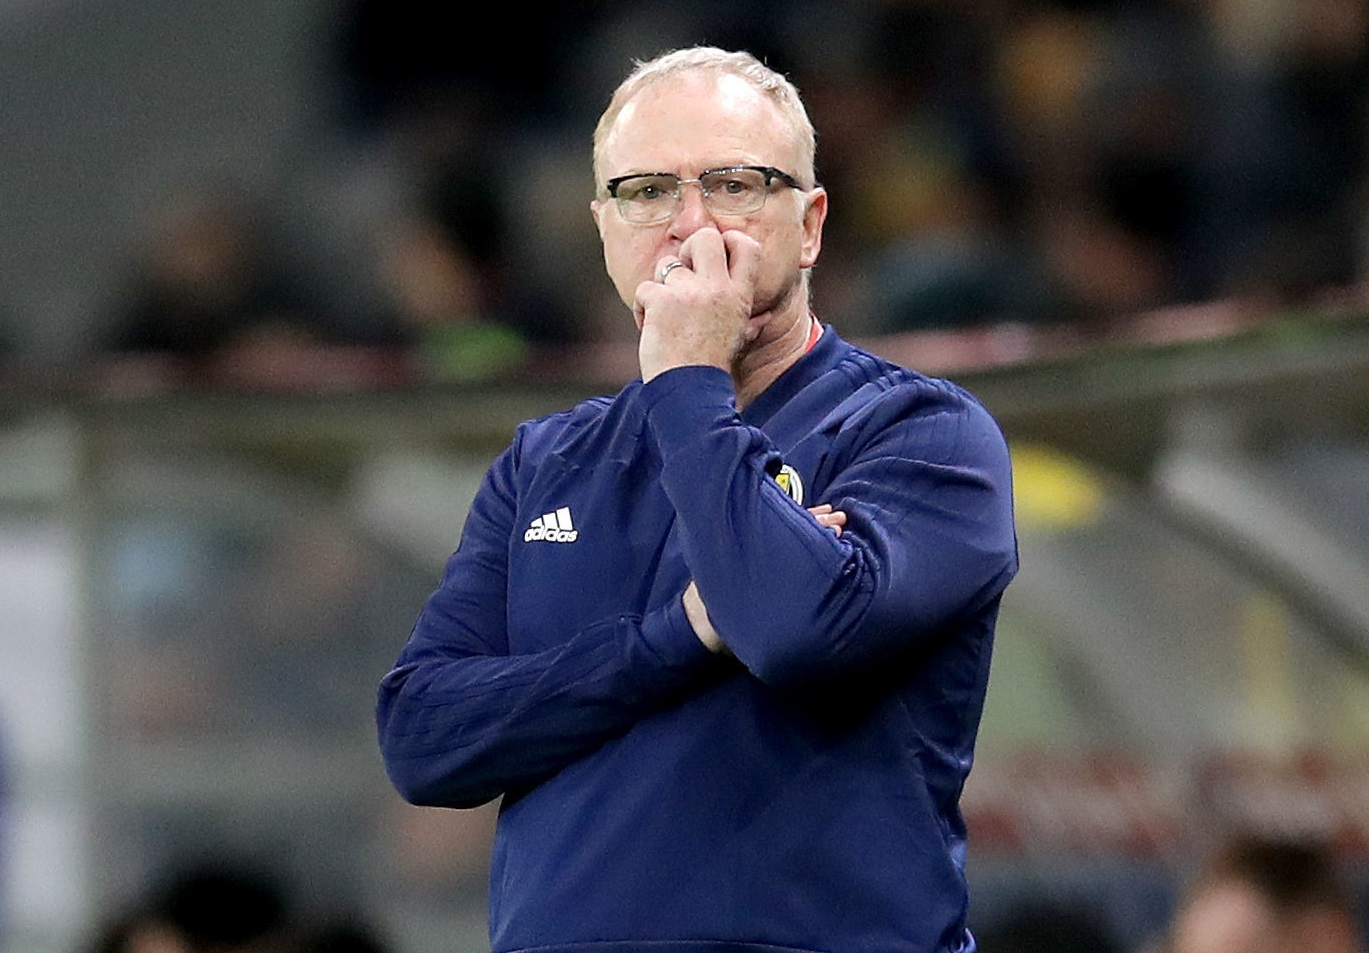 Alex McLeish's post-match comment rubbed salt in my wound